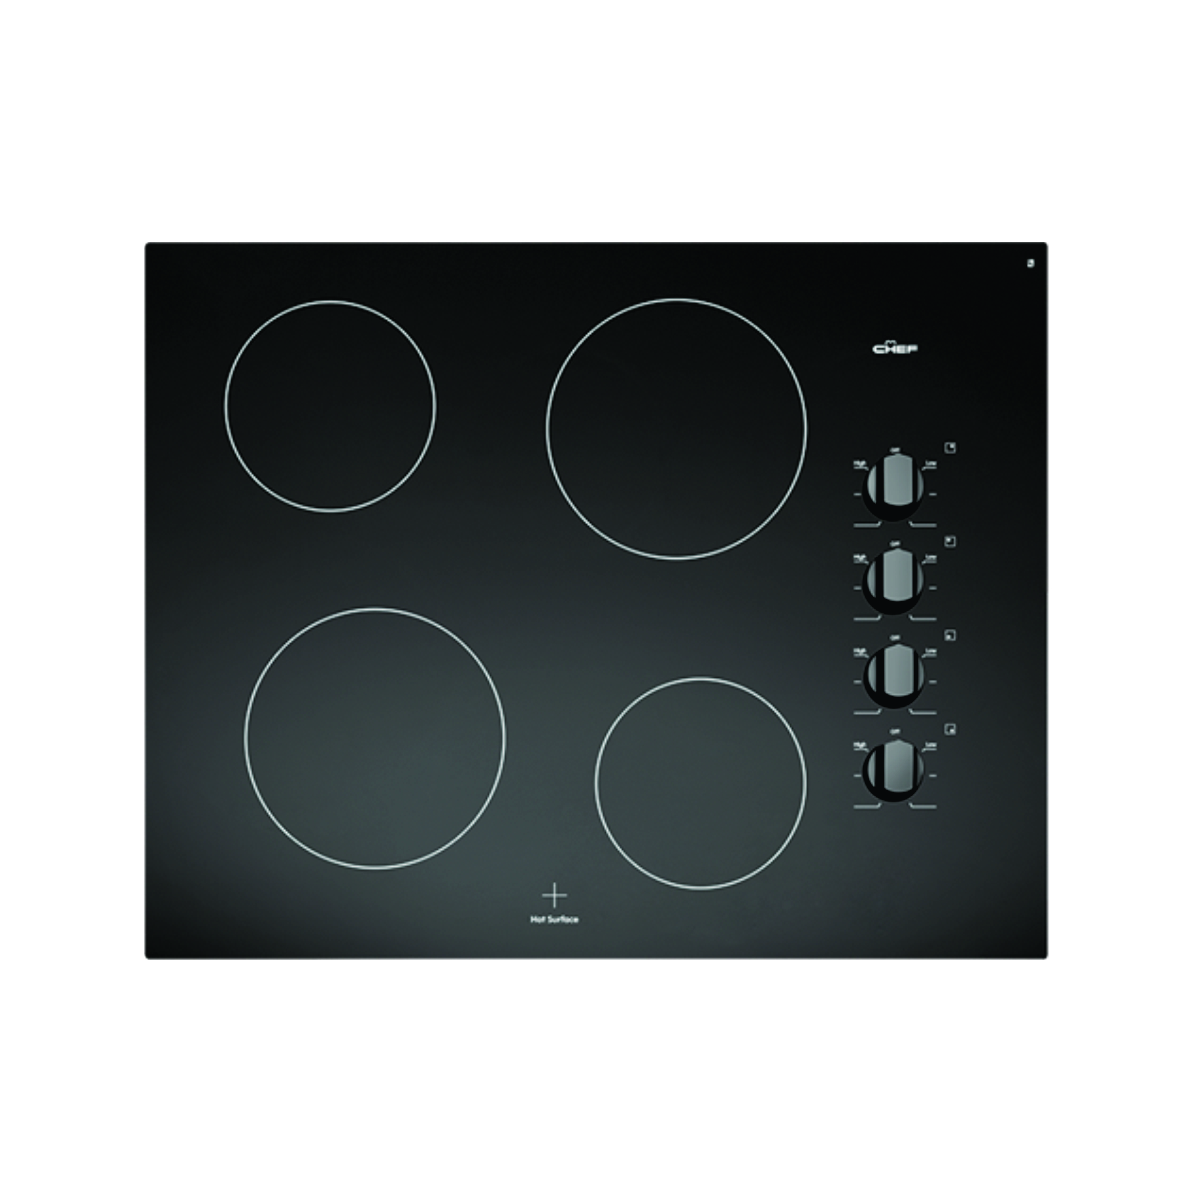 CHEF Cooktop